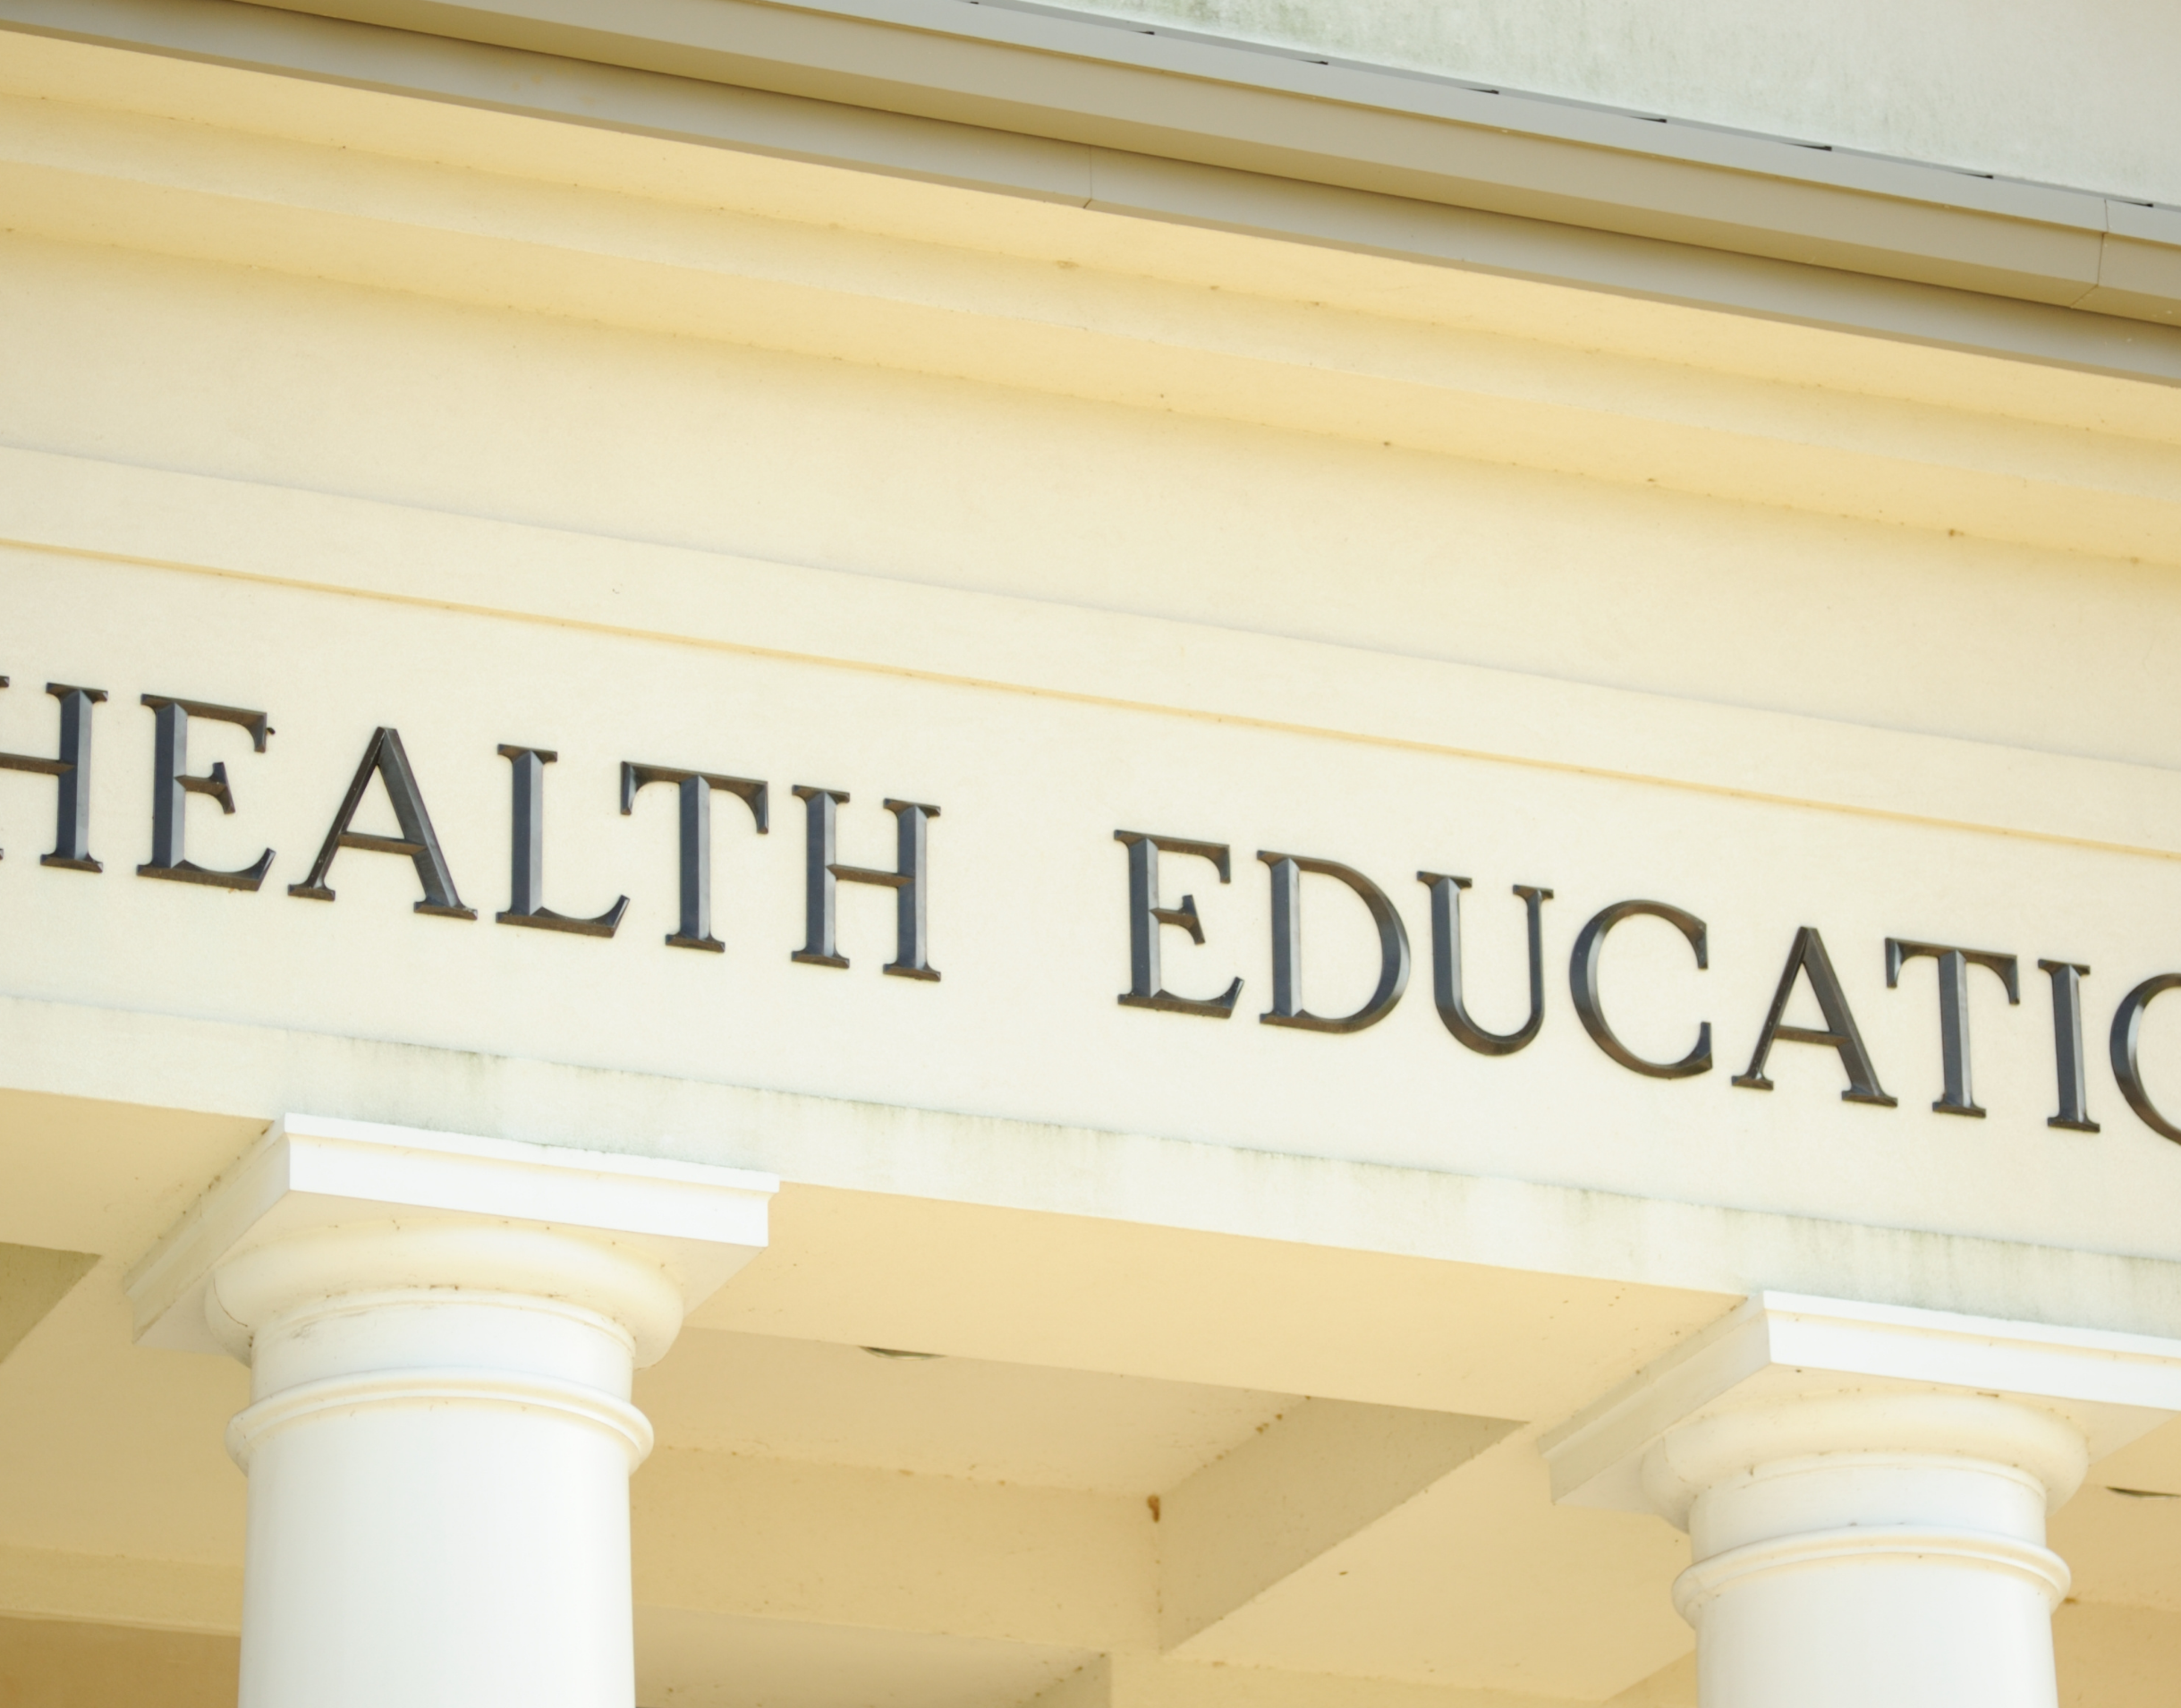 Health Education Services